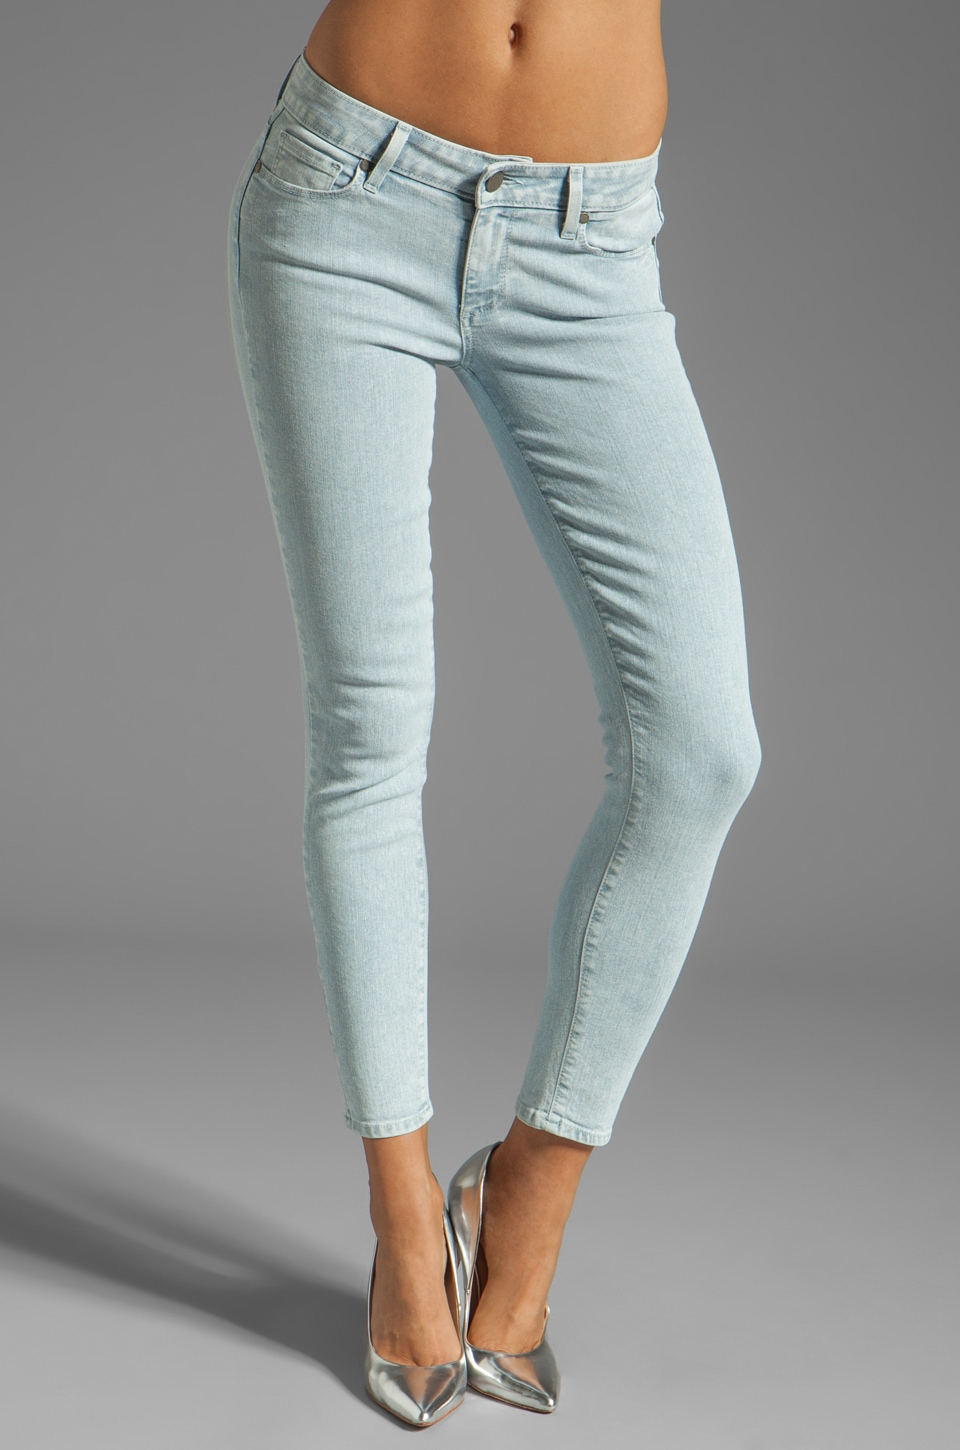 PAIGE Denim Verdugo Ankle Skinny in White Crystalline